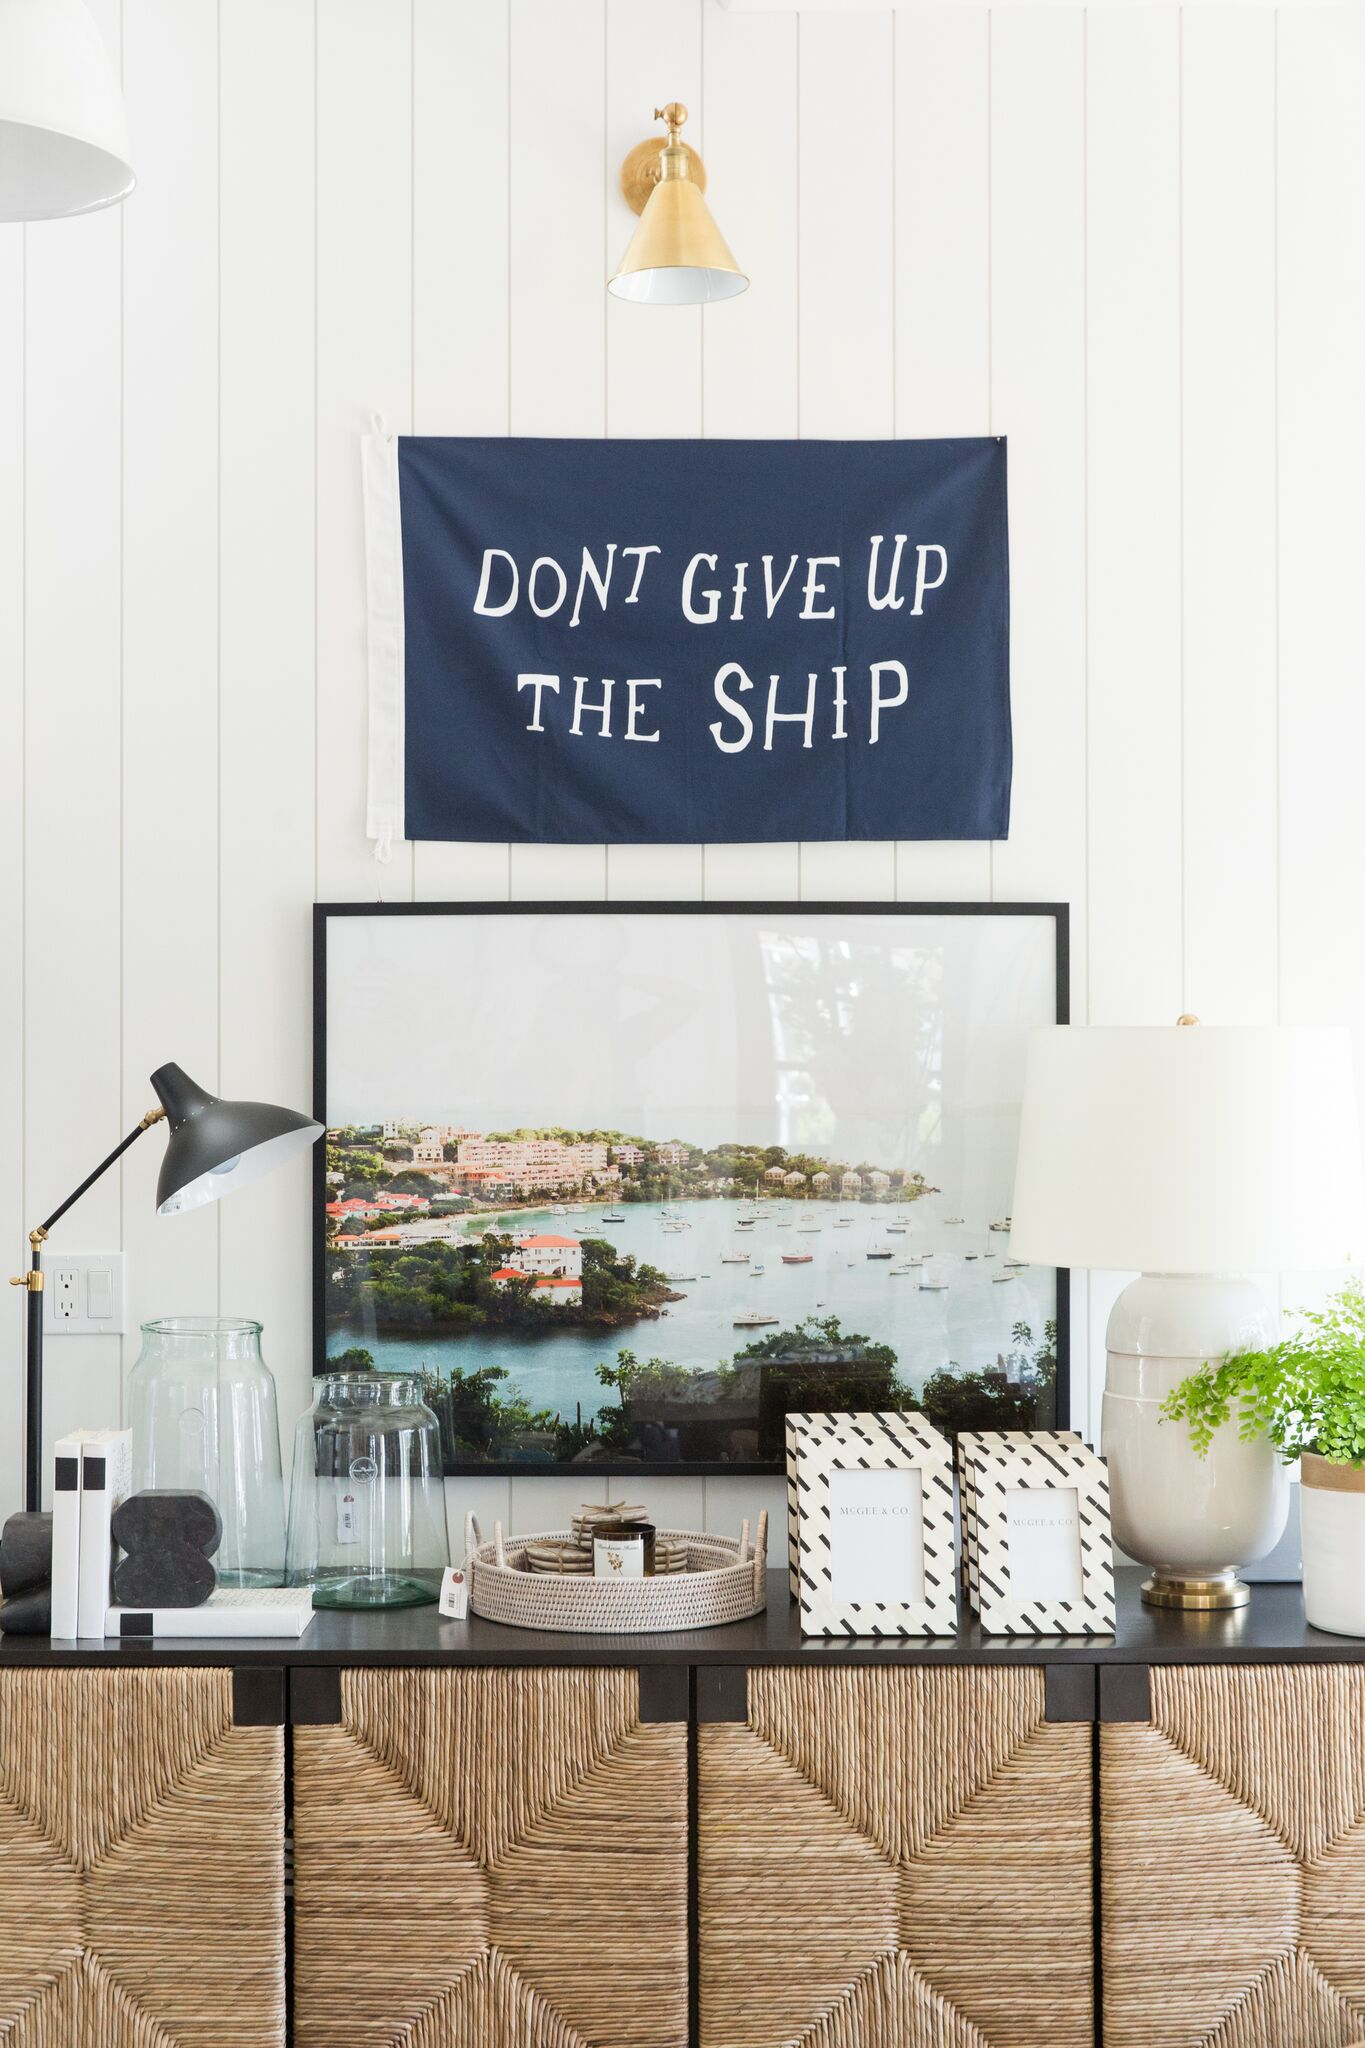 Shop  Don't Give Up The Ship ,  Charlton Table Lamp ,  French Mason Jars ,  Black Label Books ,  Socrates Bookends ,  Light Rattan Round Trays ,  Murchison-Home Candle ,  Tile Frame ,  Newcomb Table Lamp ,  St John ,  Console